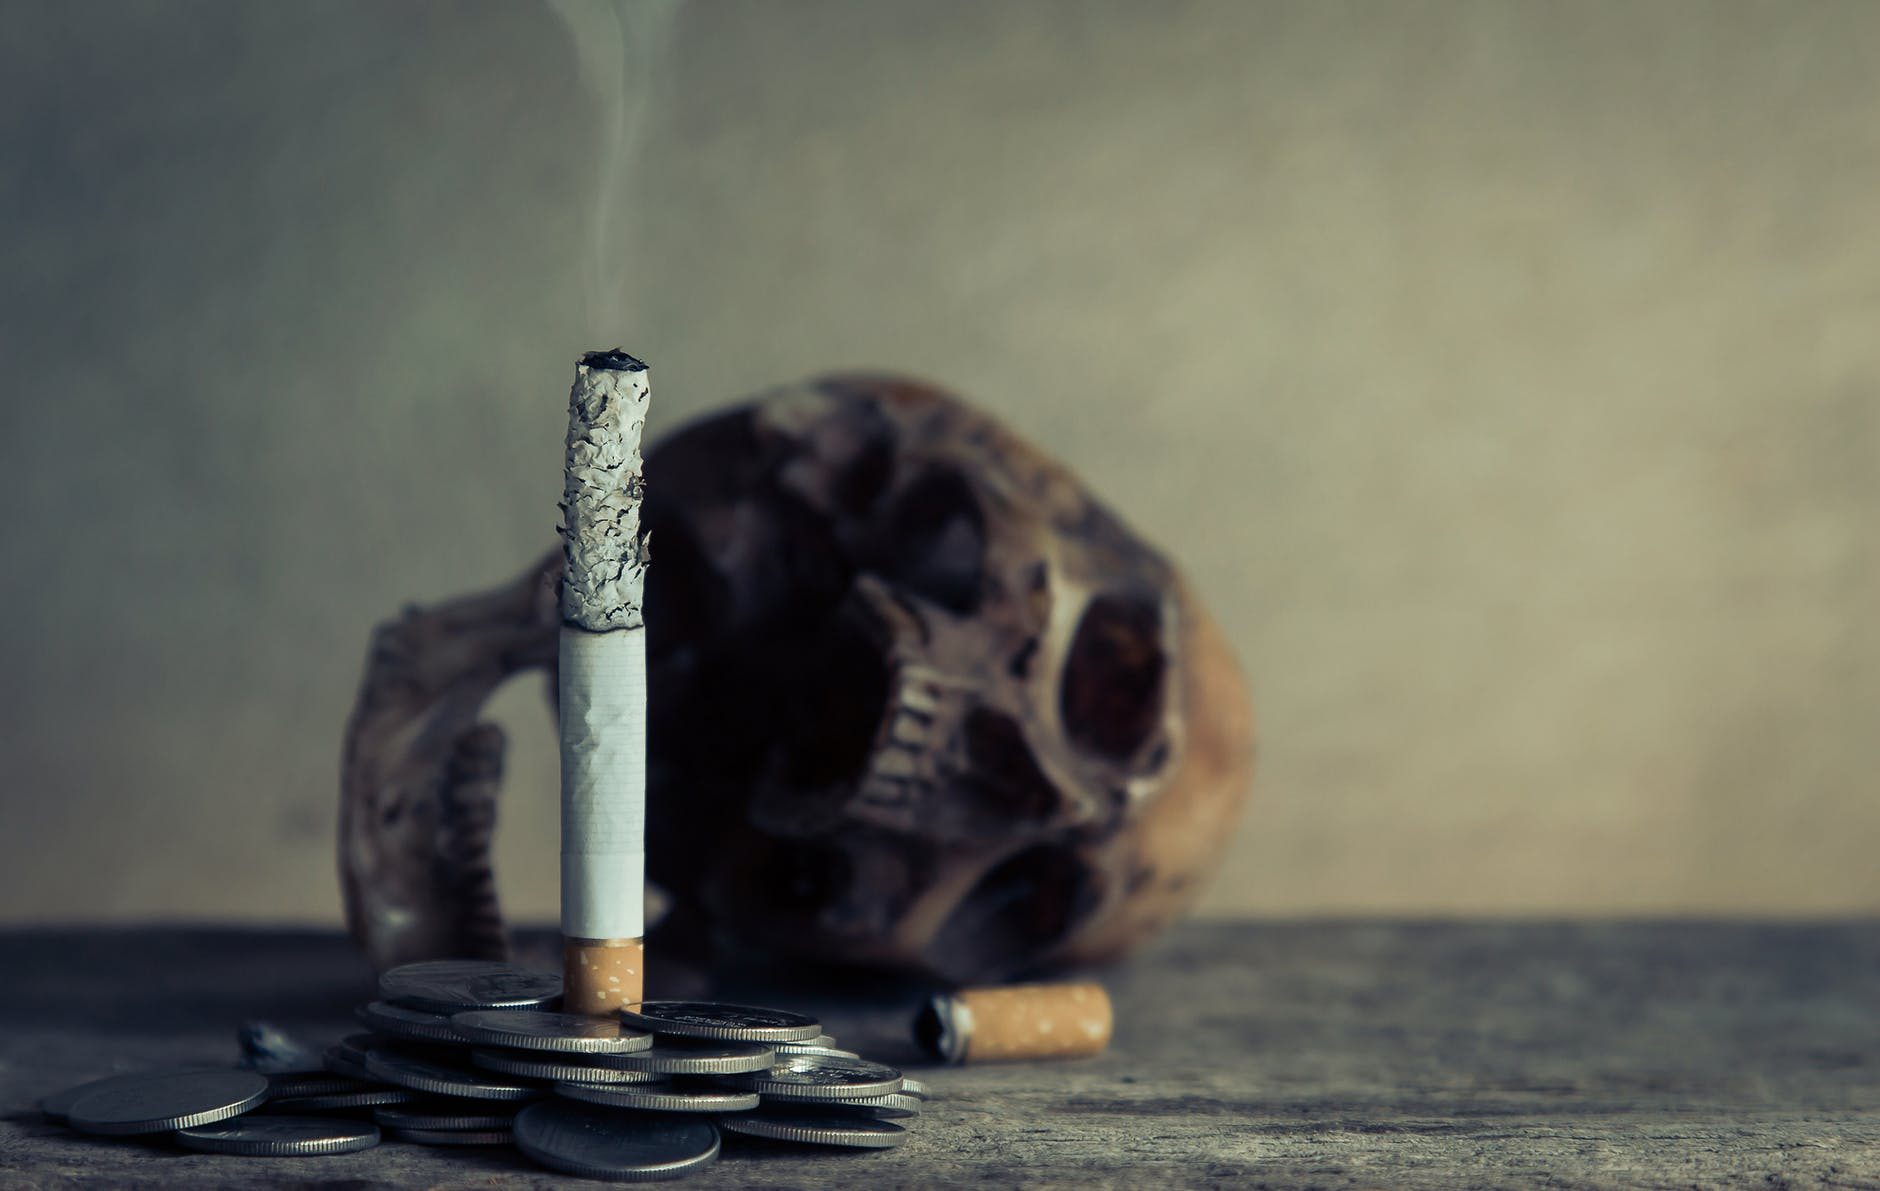 cigarette stick on pile of coins